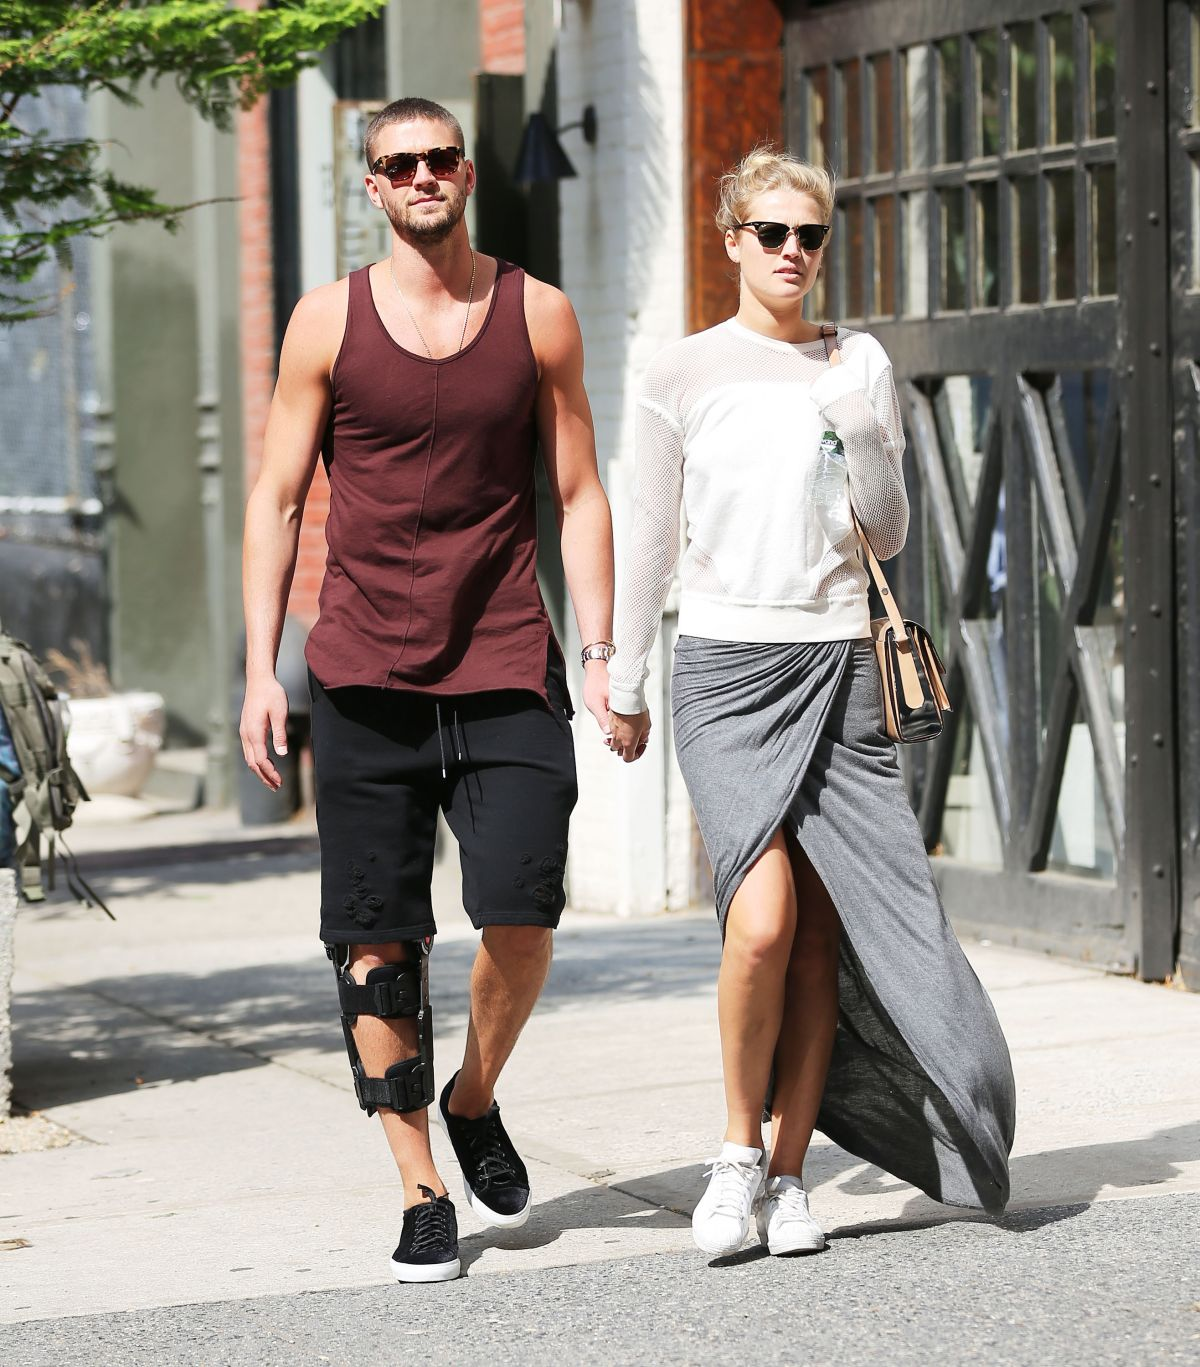 Toni garrn out and about in new york